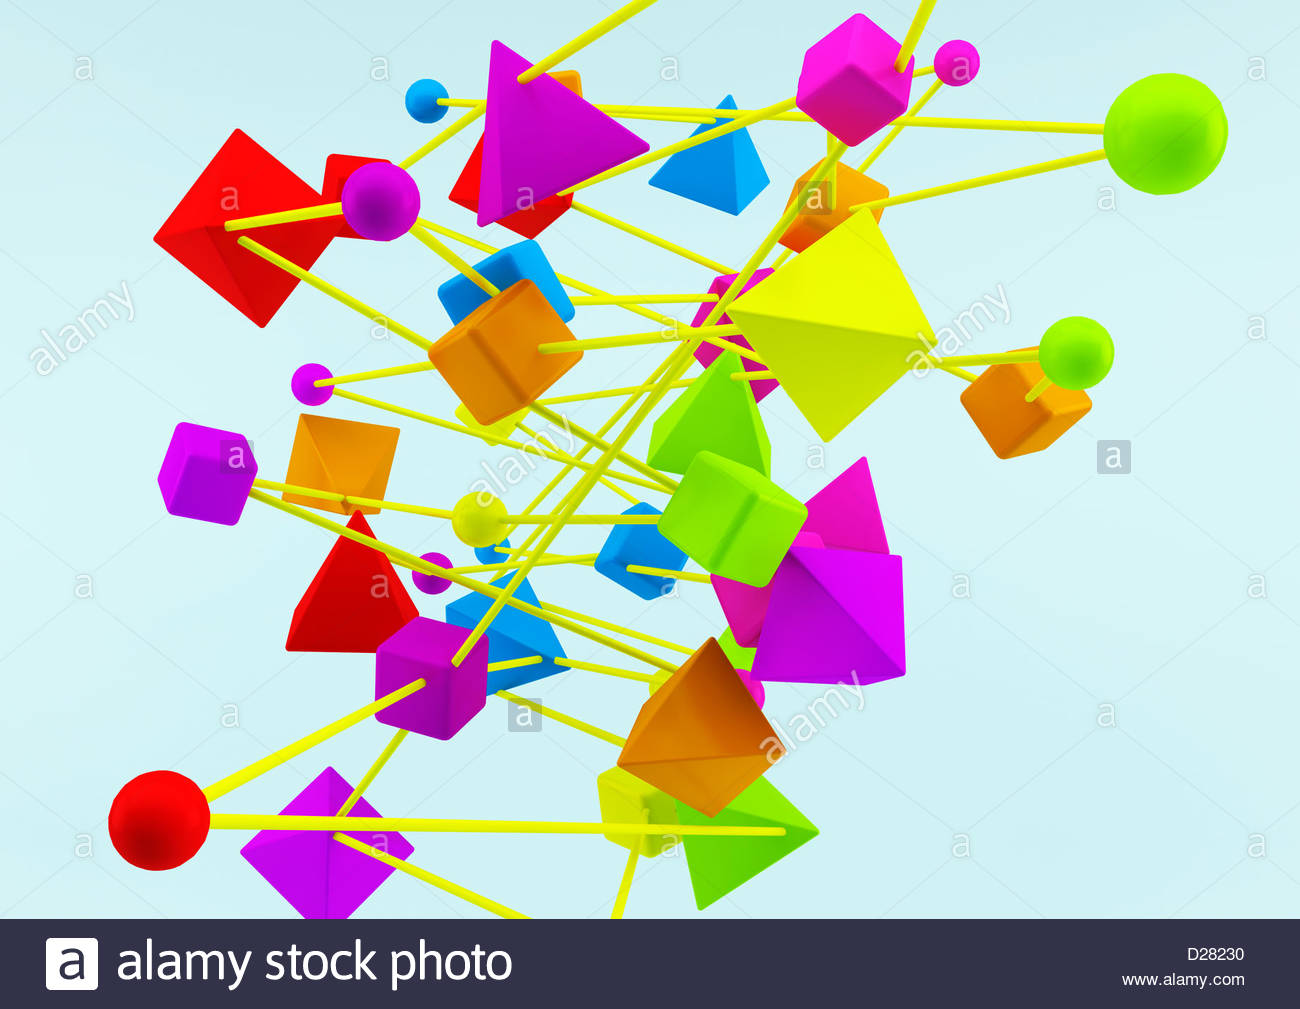 Connected multicolored geometric shapes on blue background - Stock Image